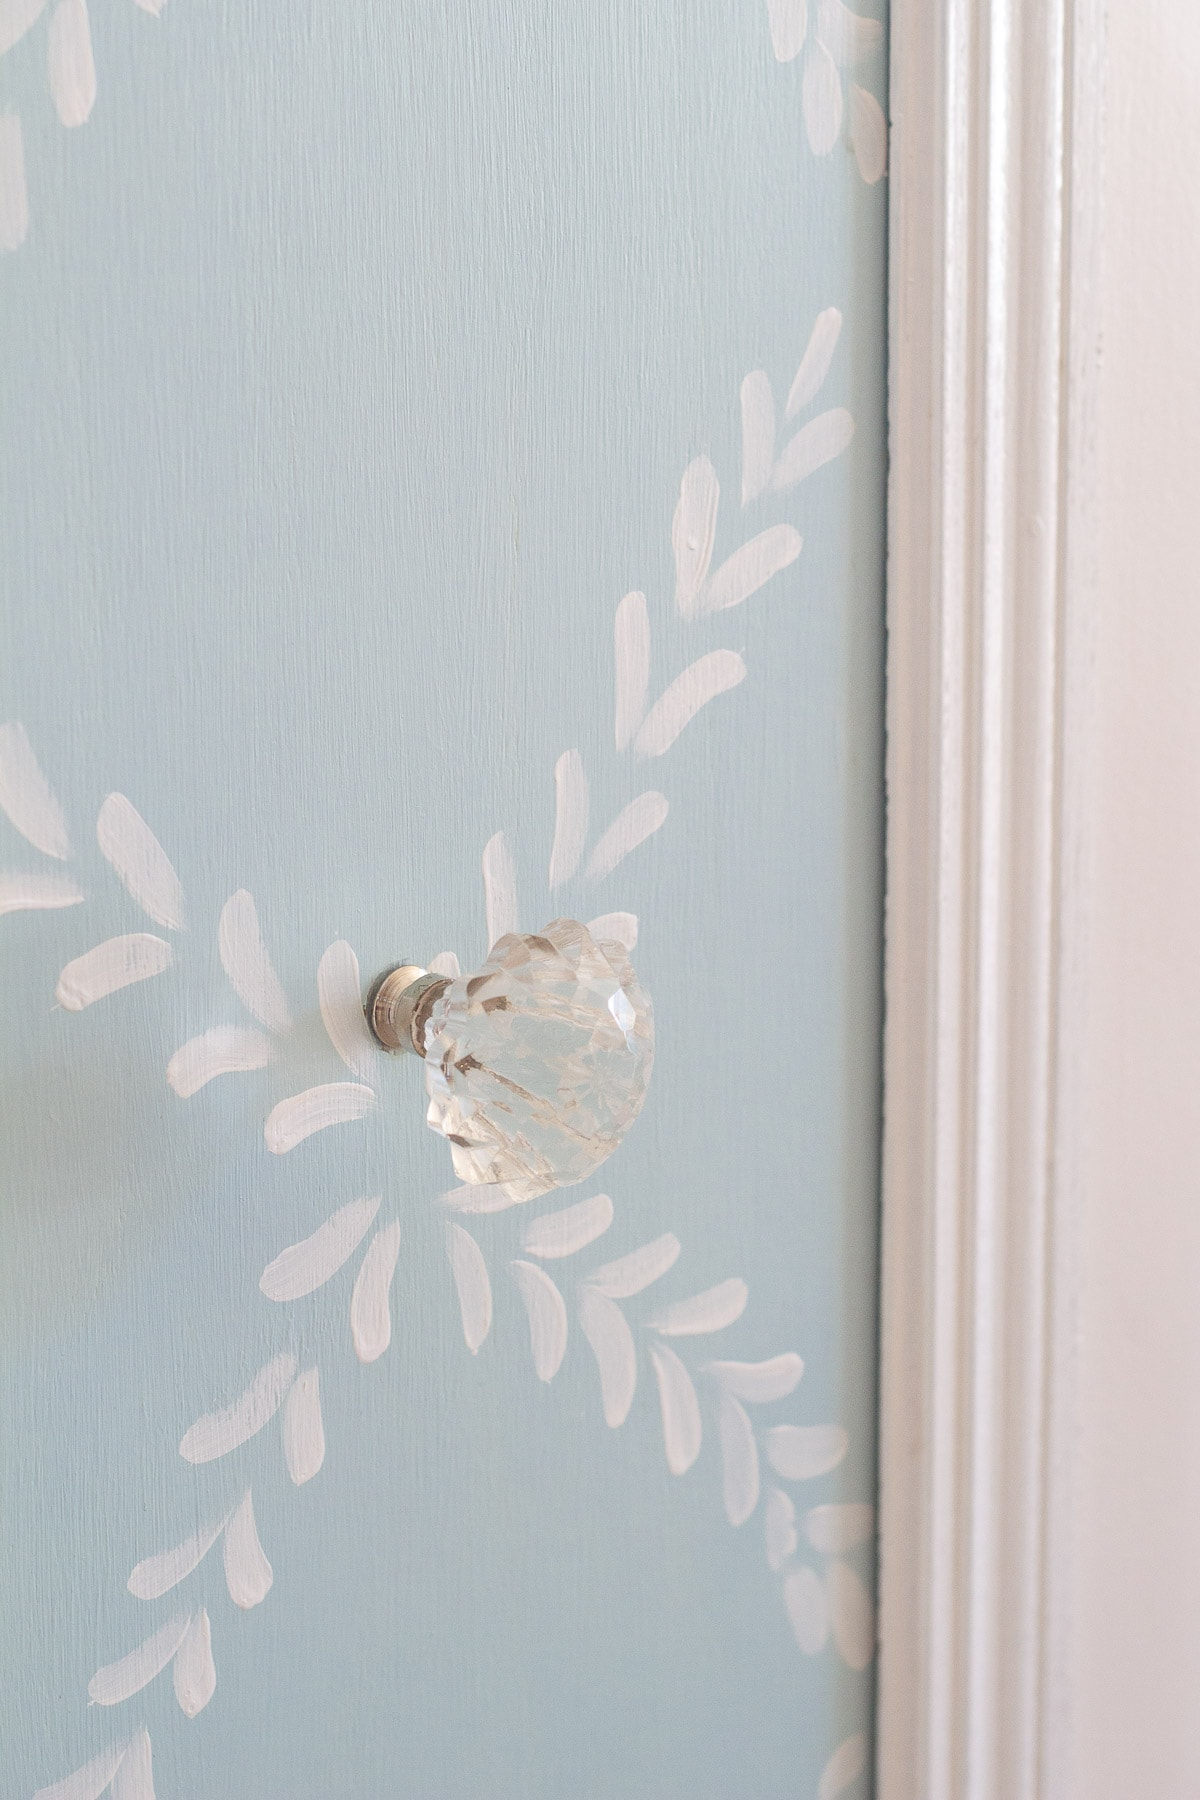 A glass doorknob installed on a chalk-painted pantry door.